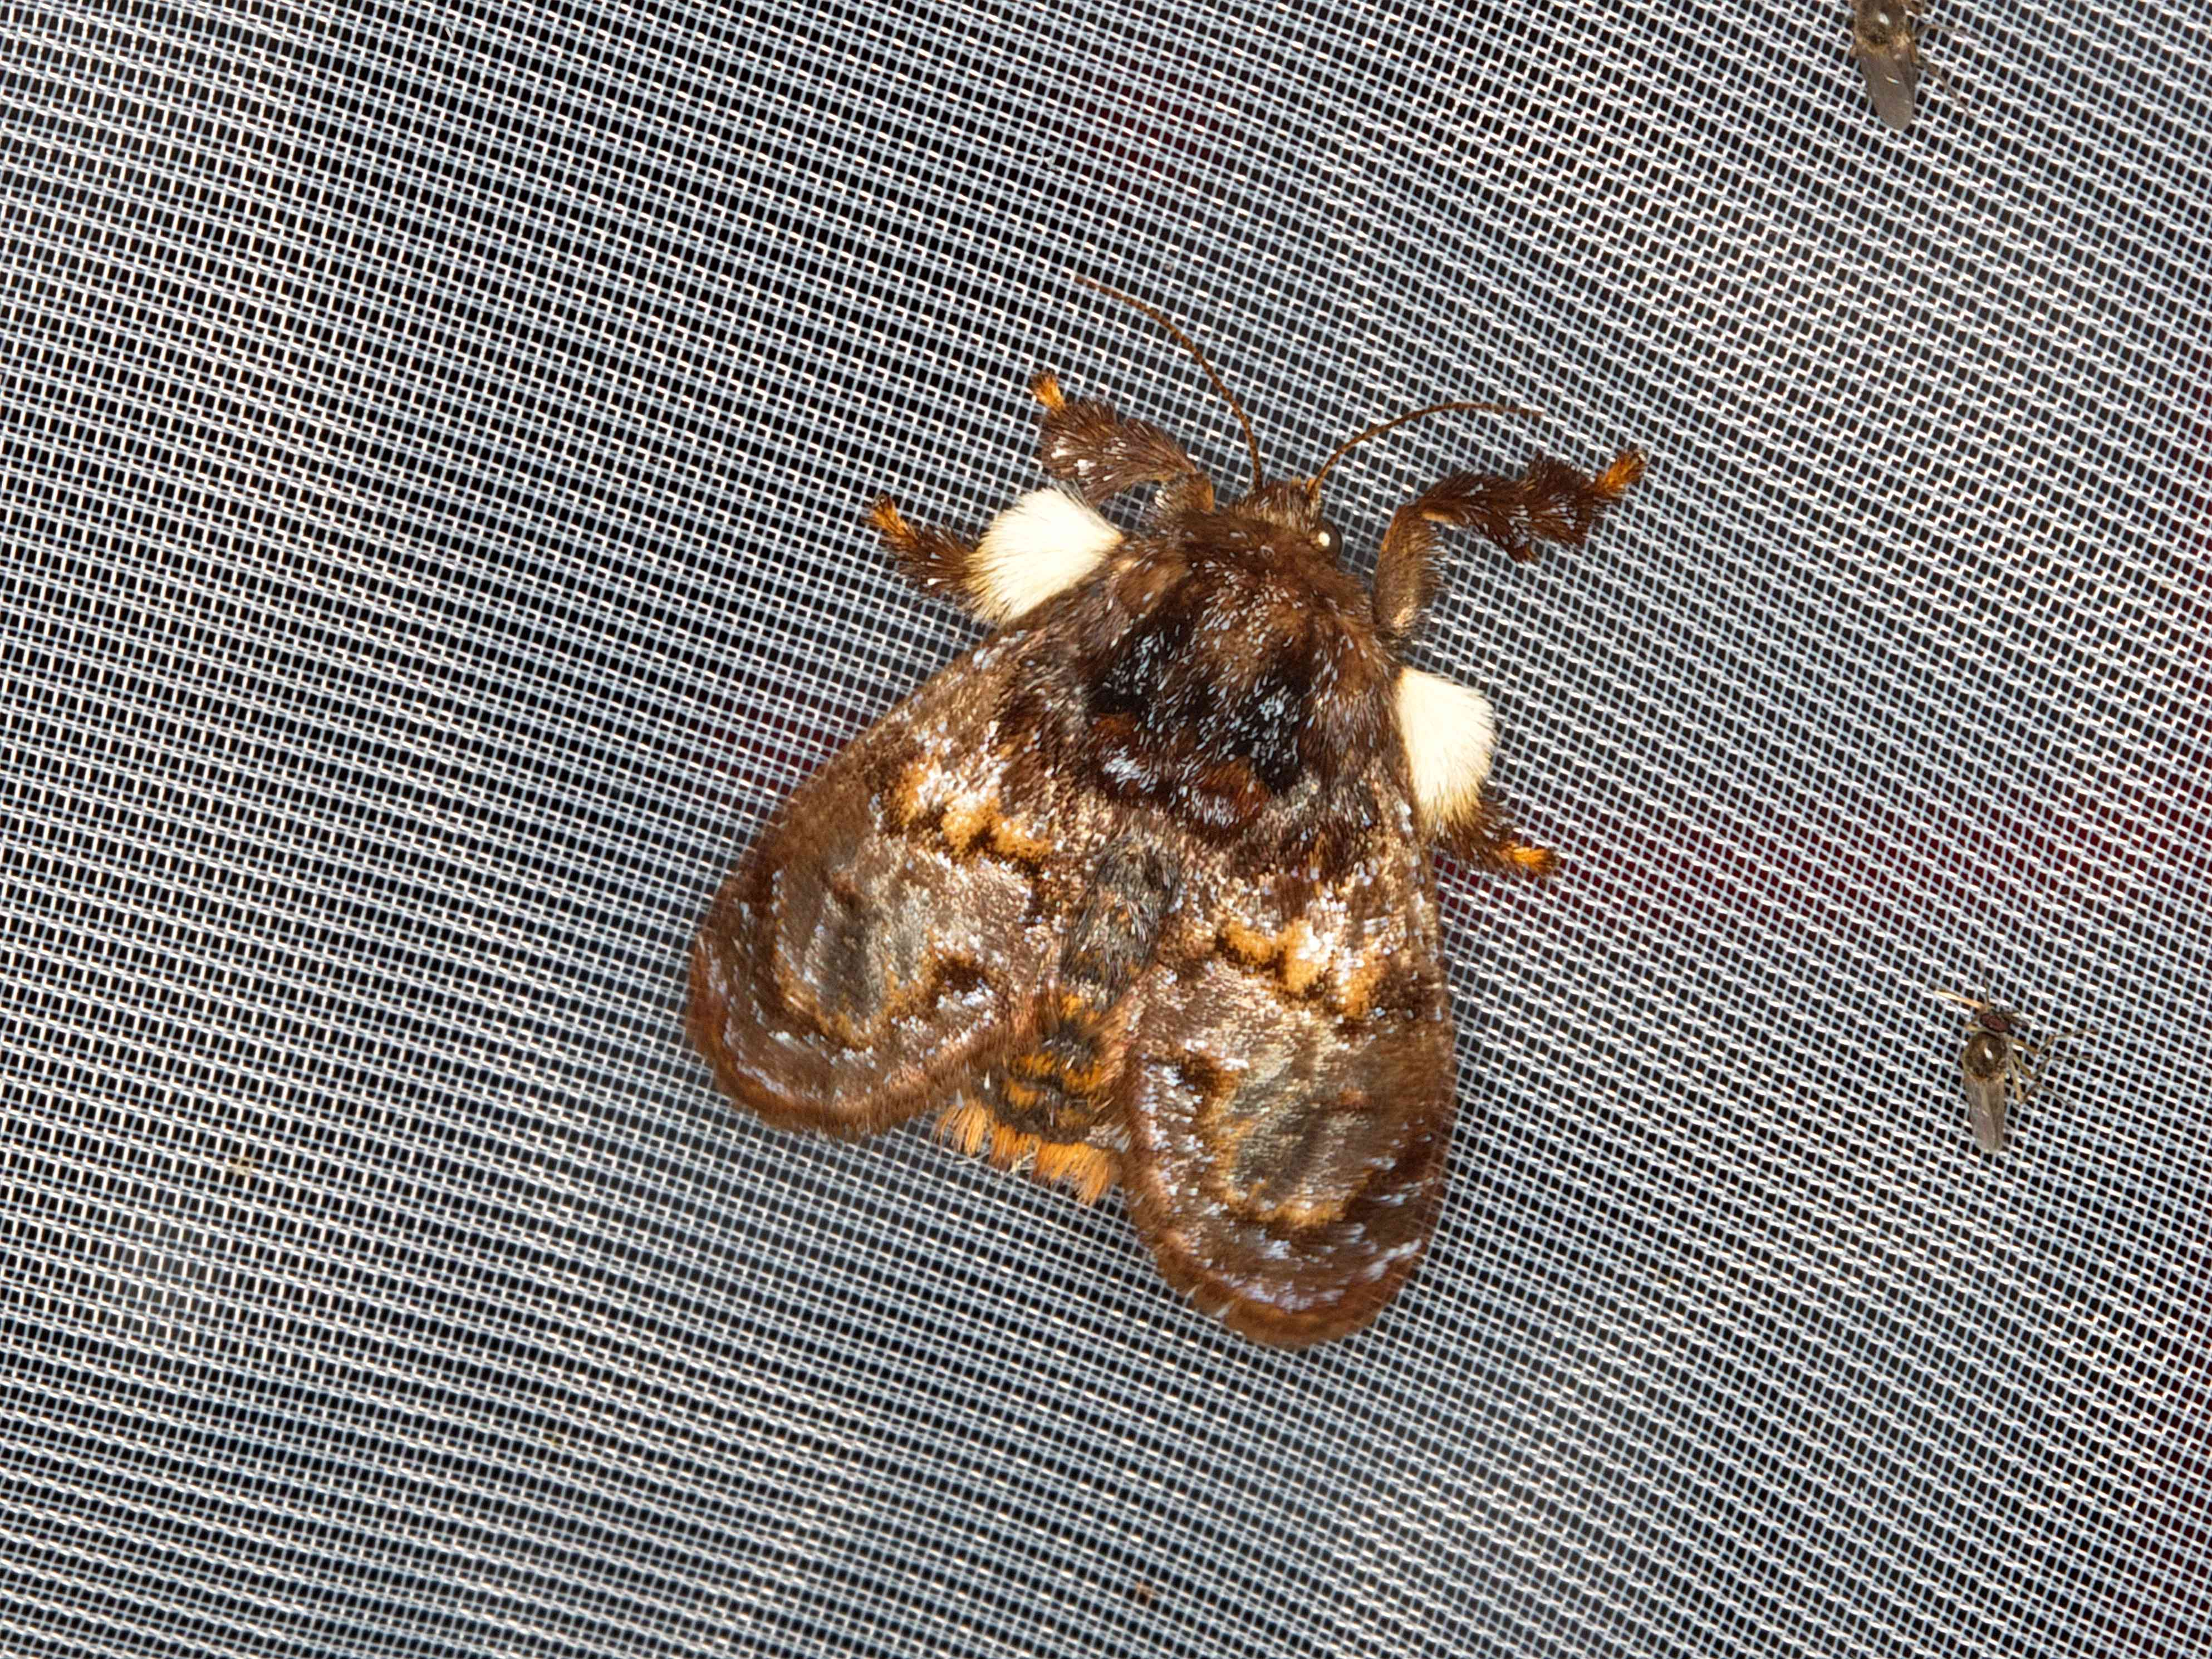 A brown hag moth with furry legs on a metal surface